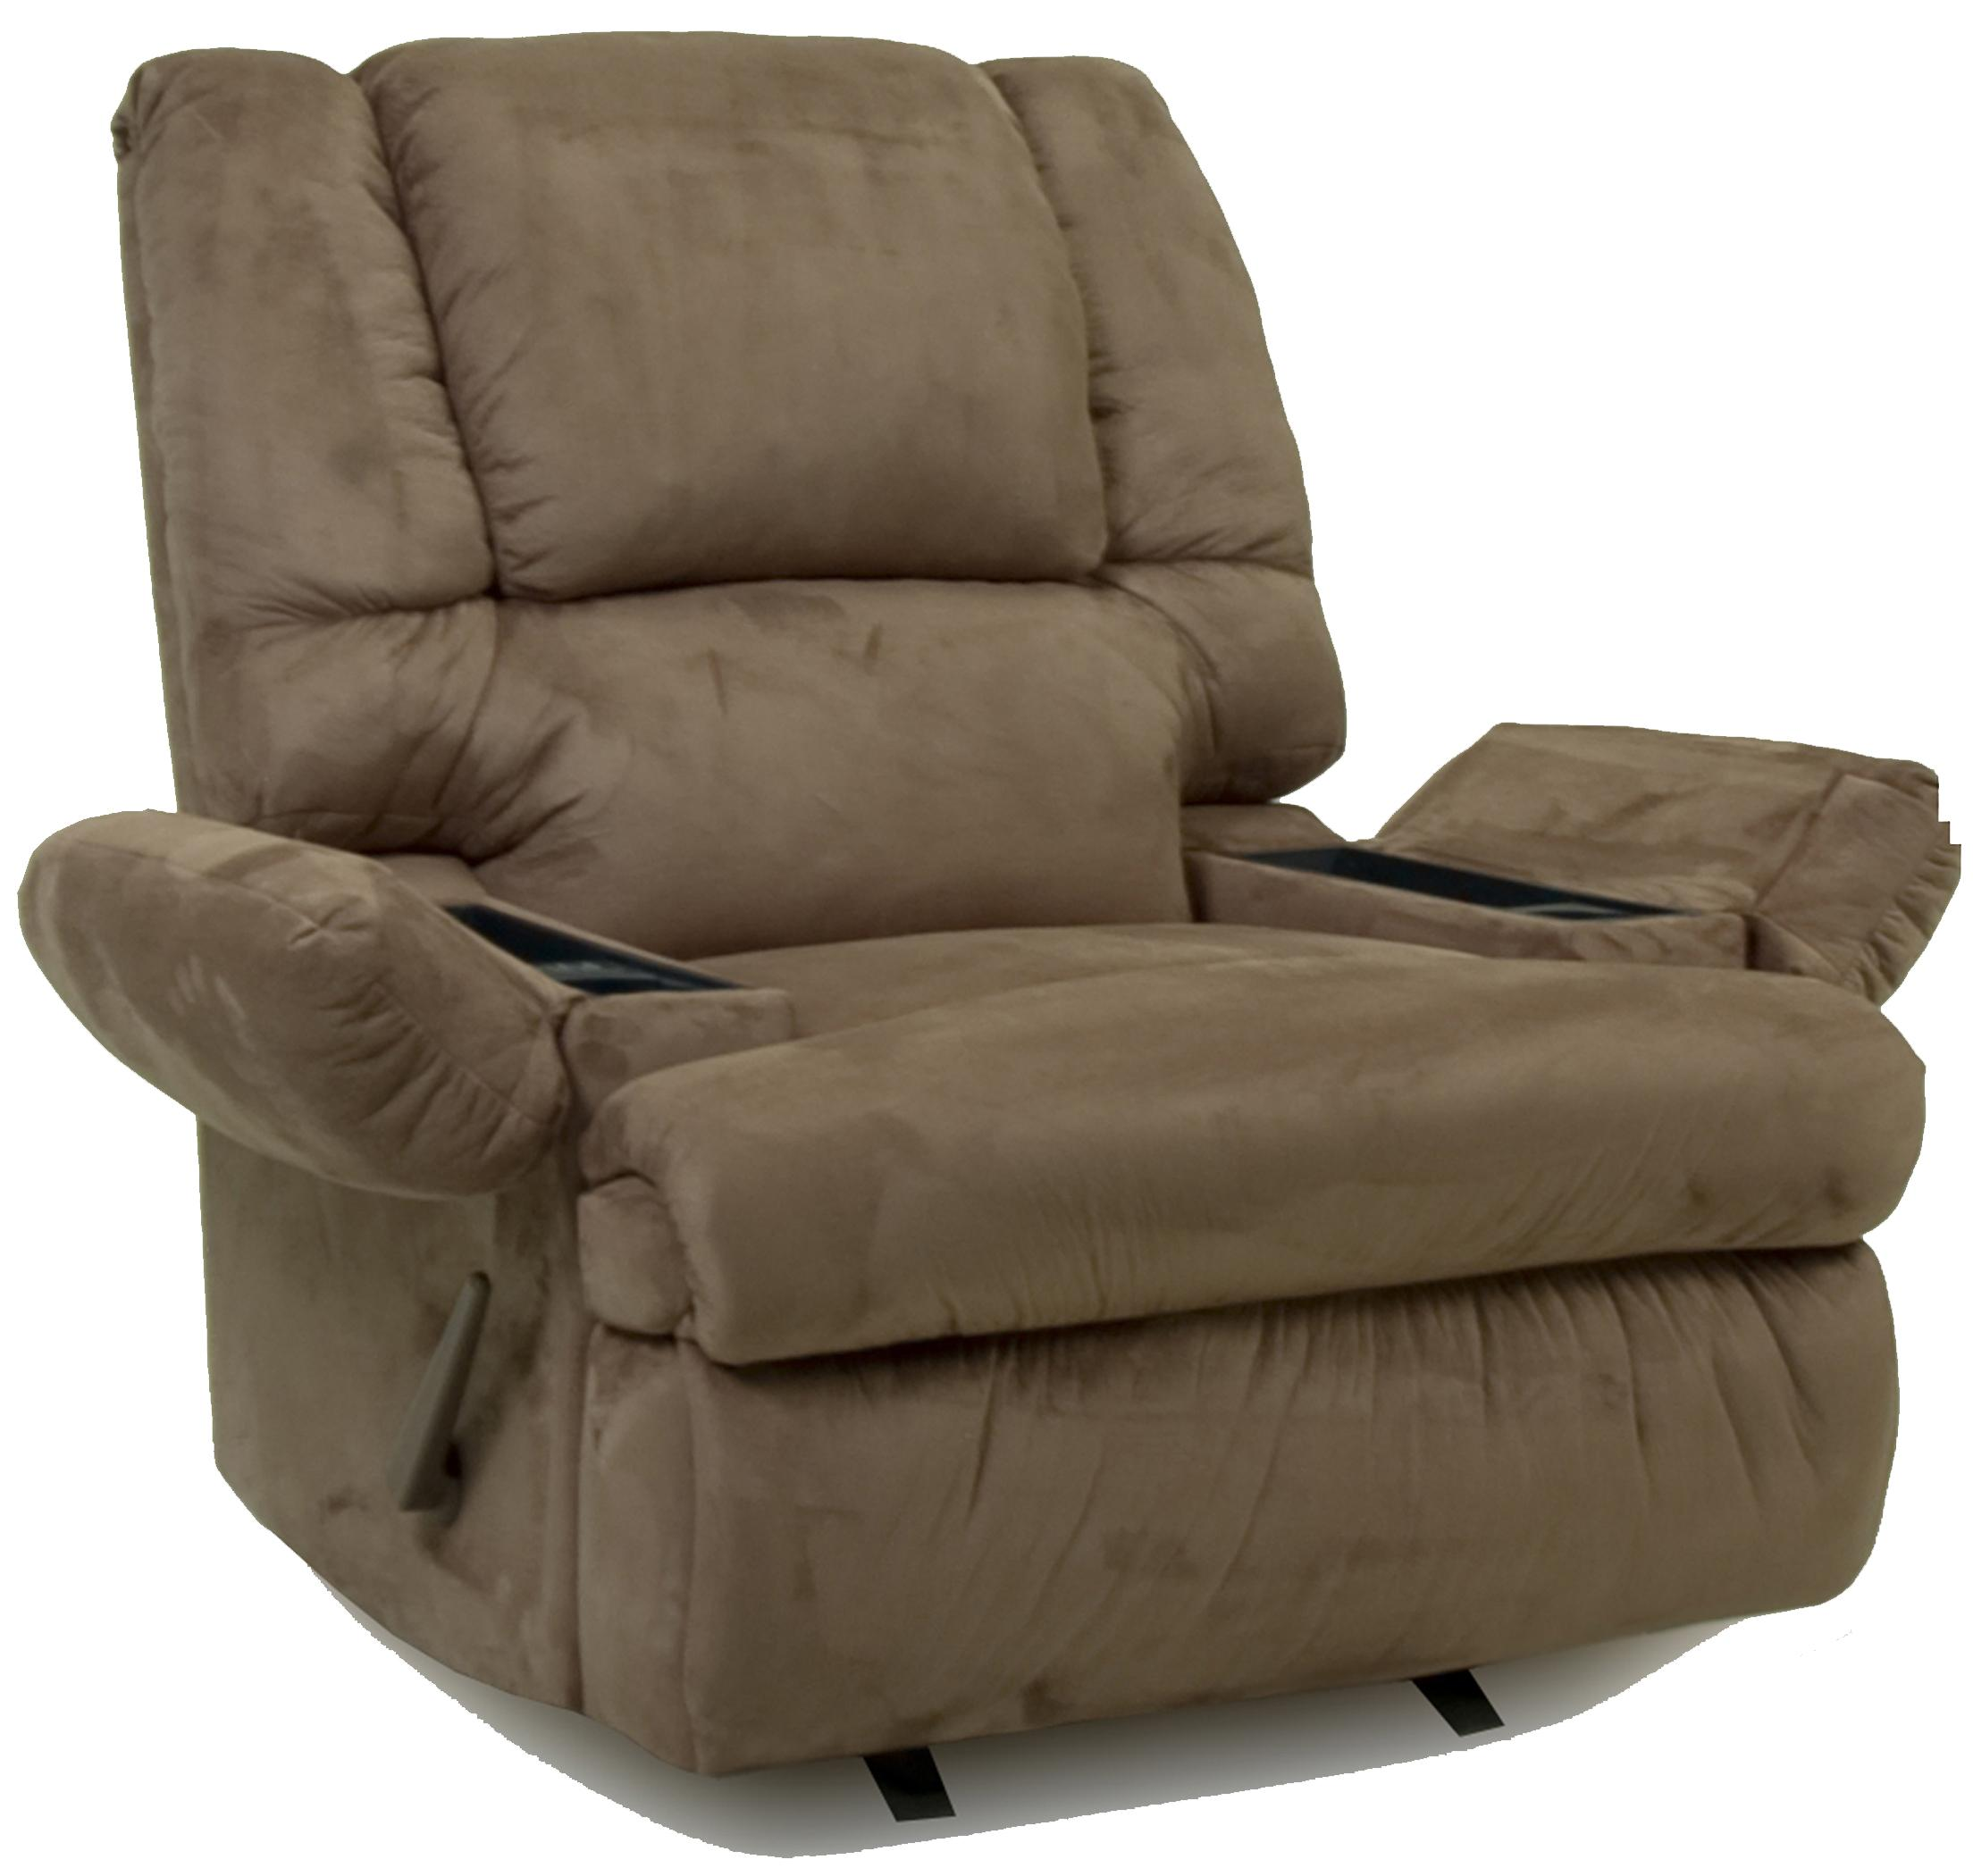 recliner with arm storage